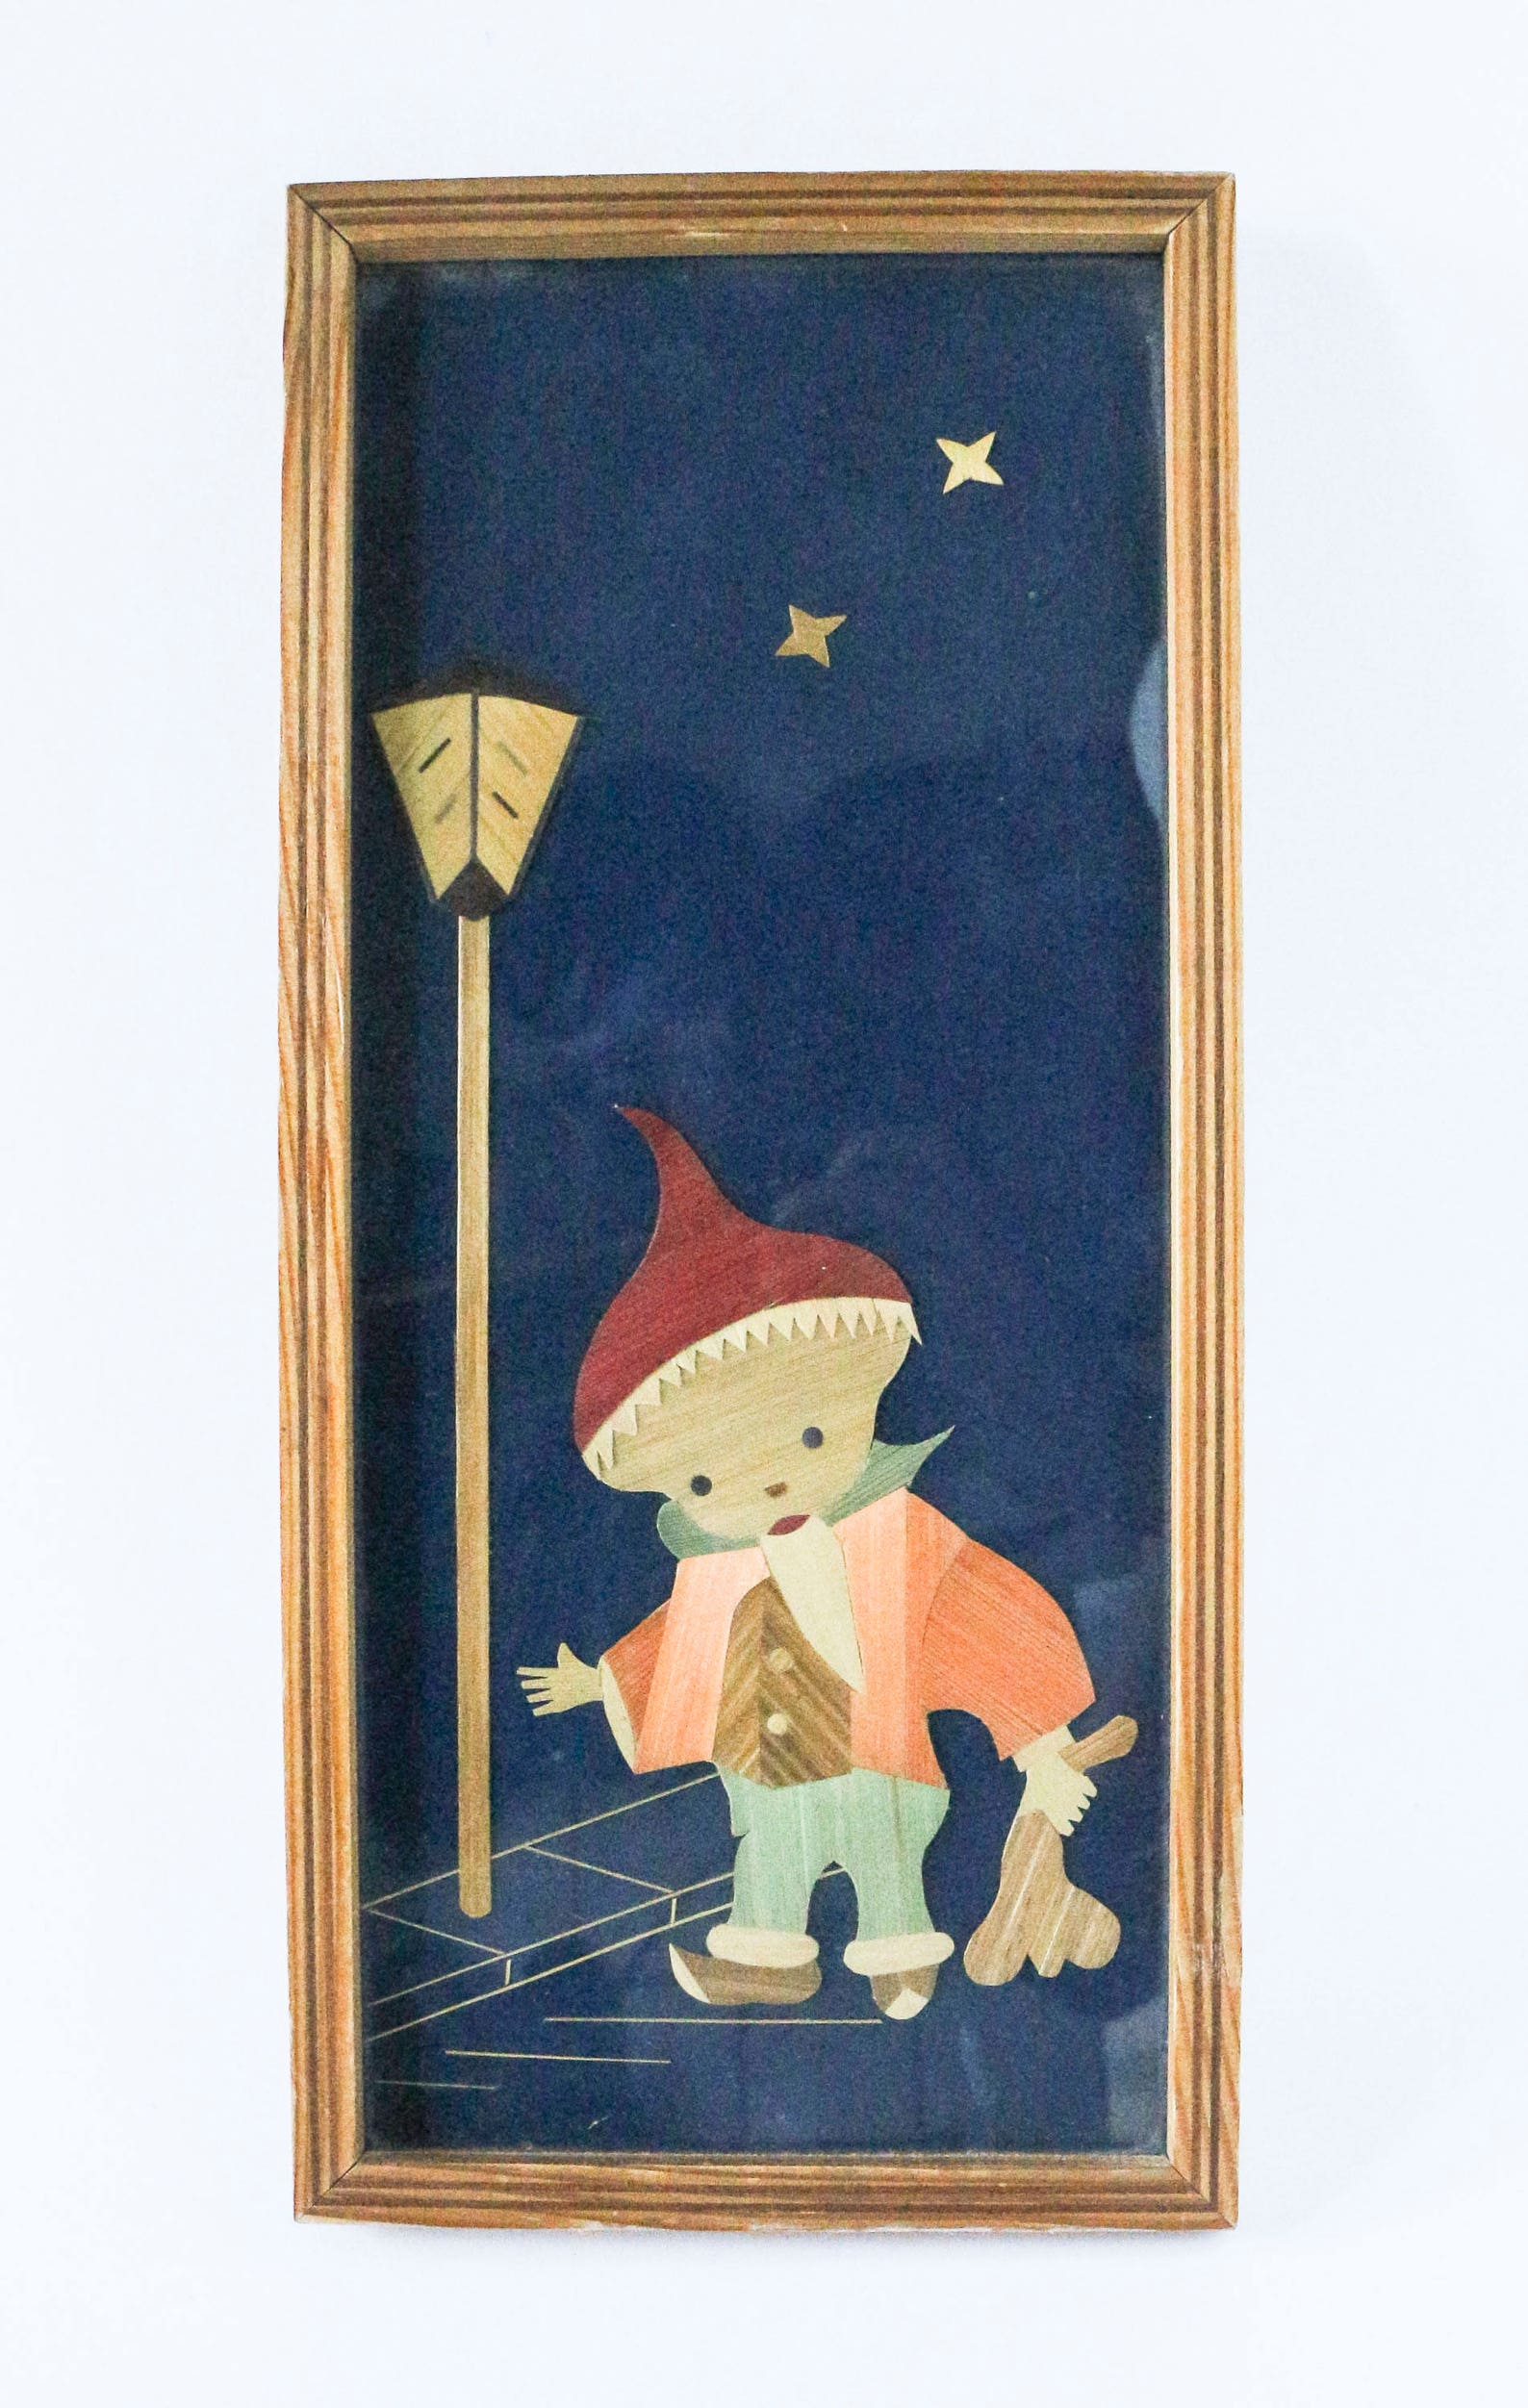 Vintage picture with wood intarsia - German children figure 'Sandmännchen' bringing good dreams - GDR television show Mr. Sandman 70s 80s